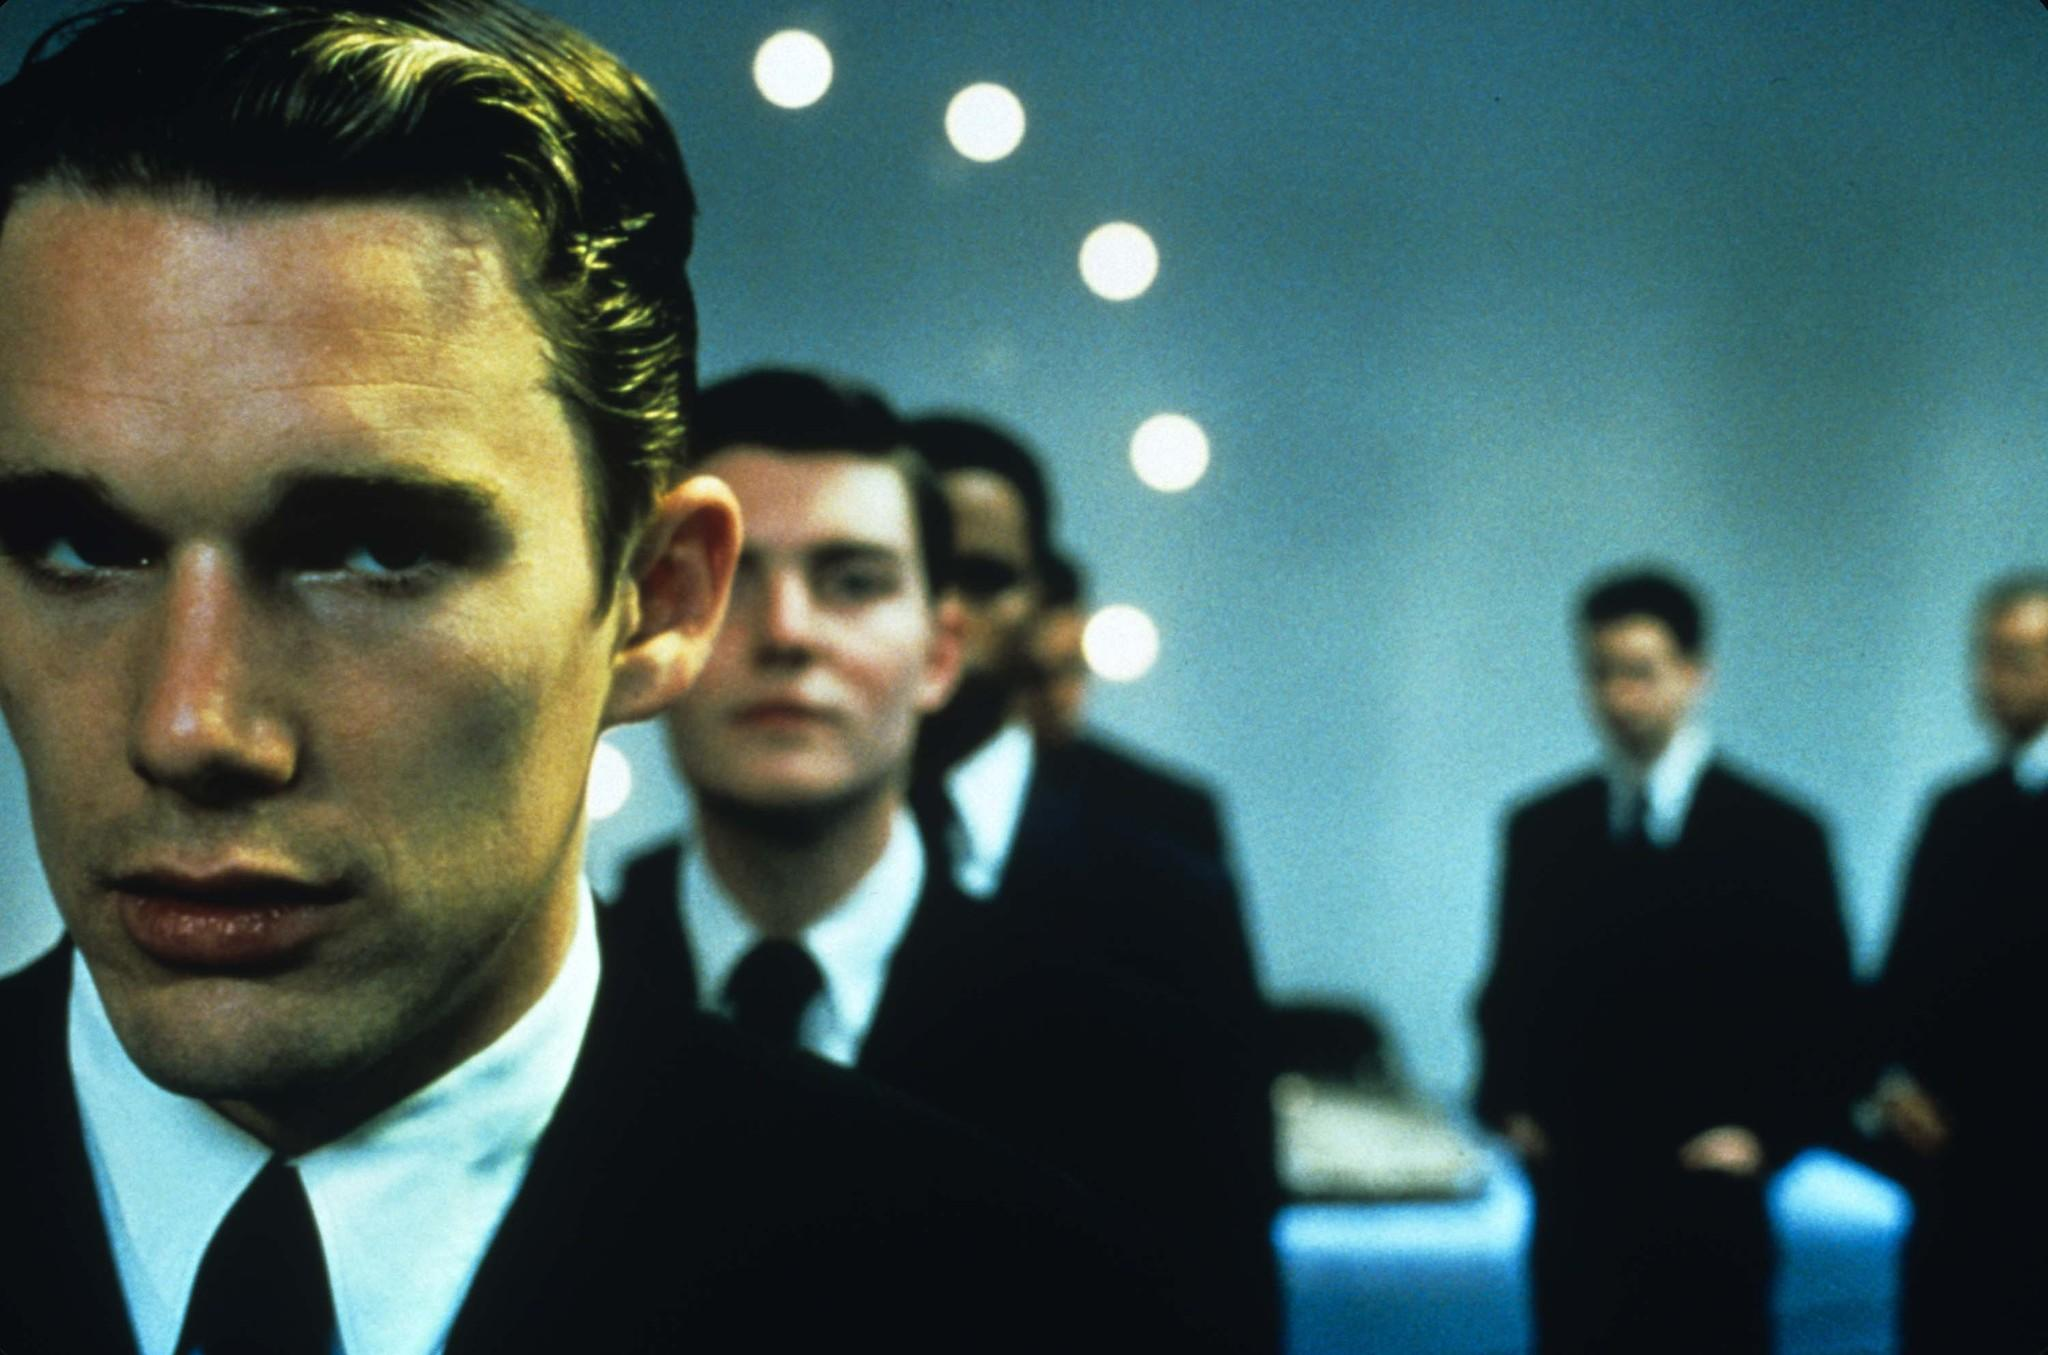 The idea of determinism in the film gattaca by andrew niccol